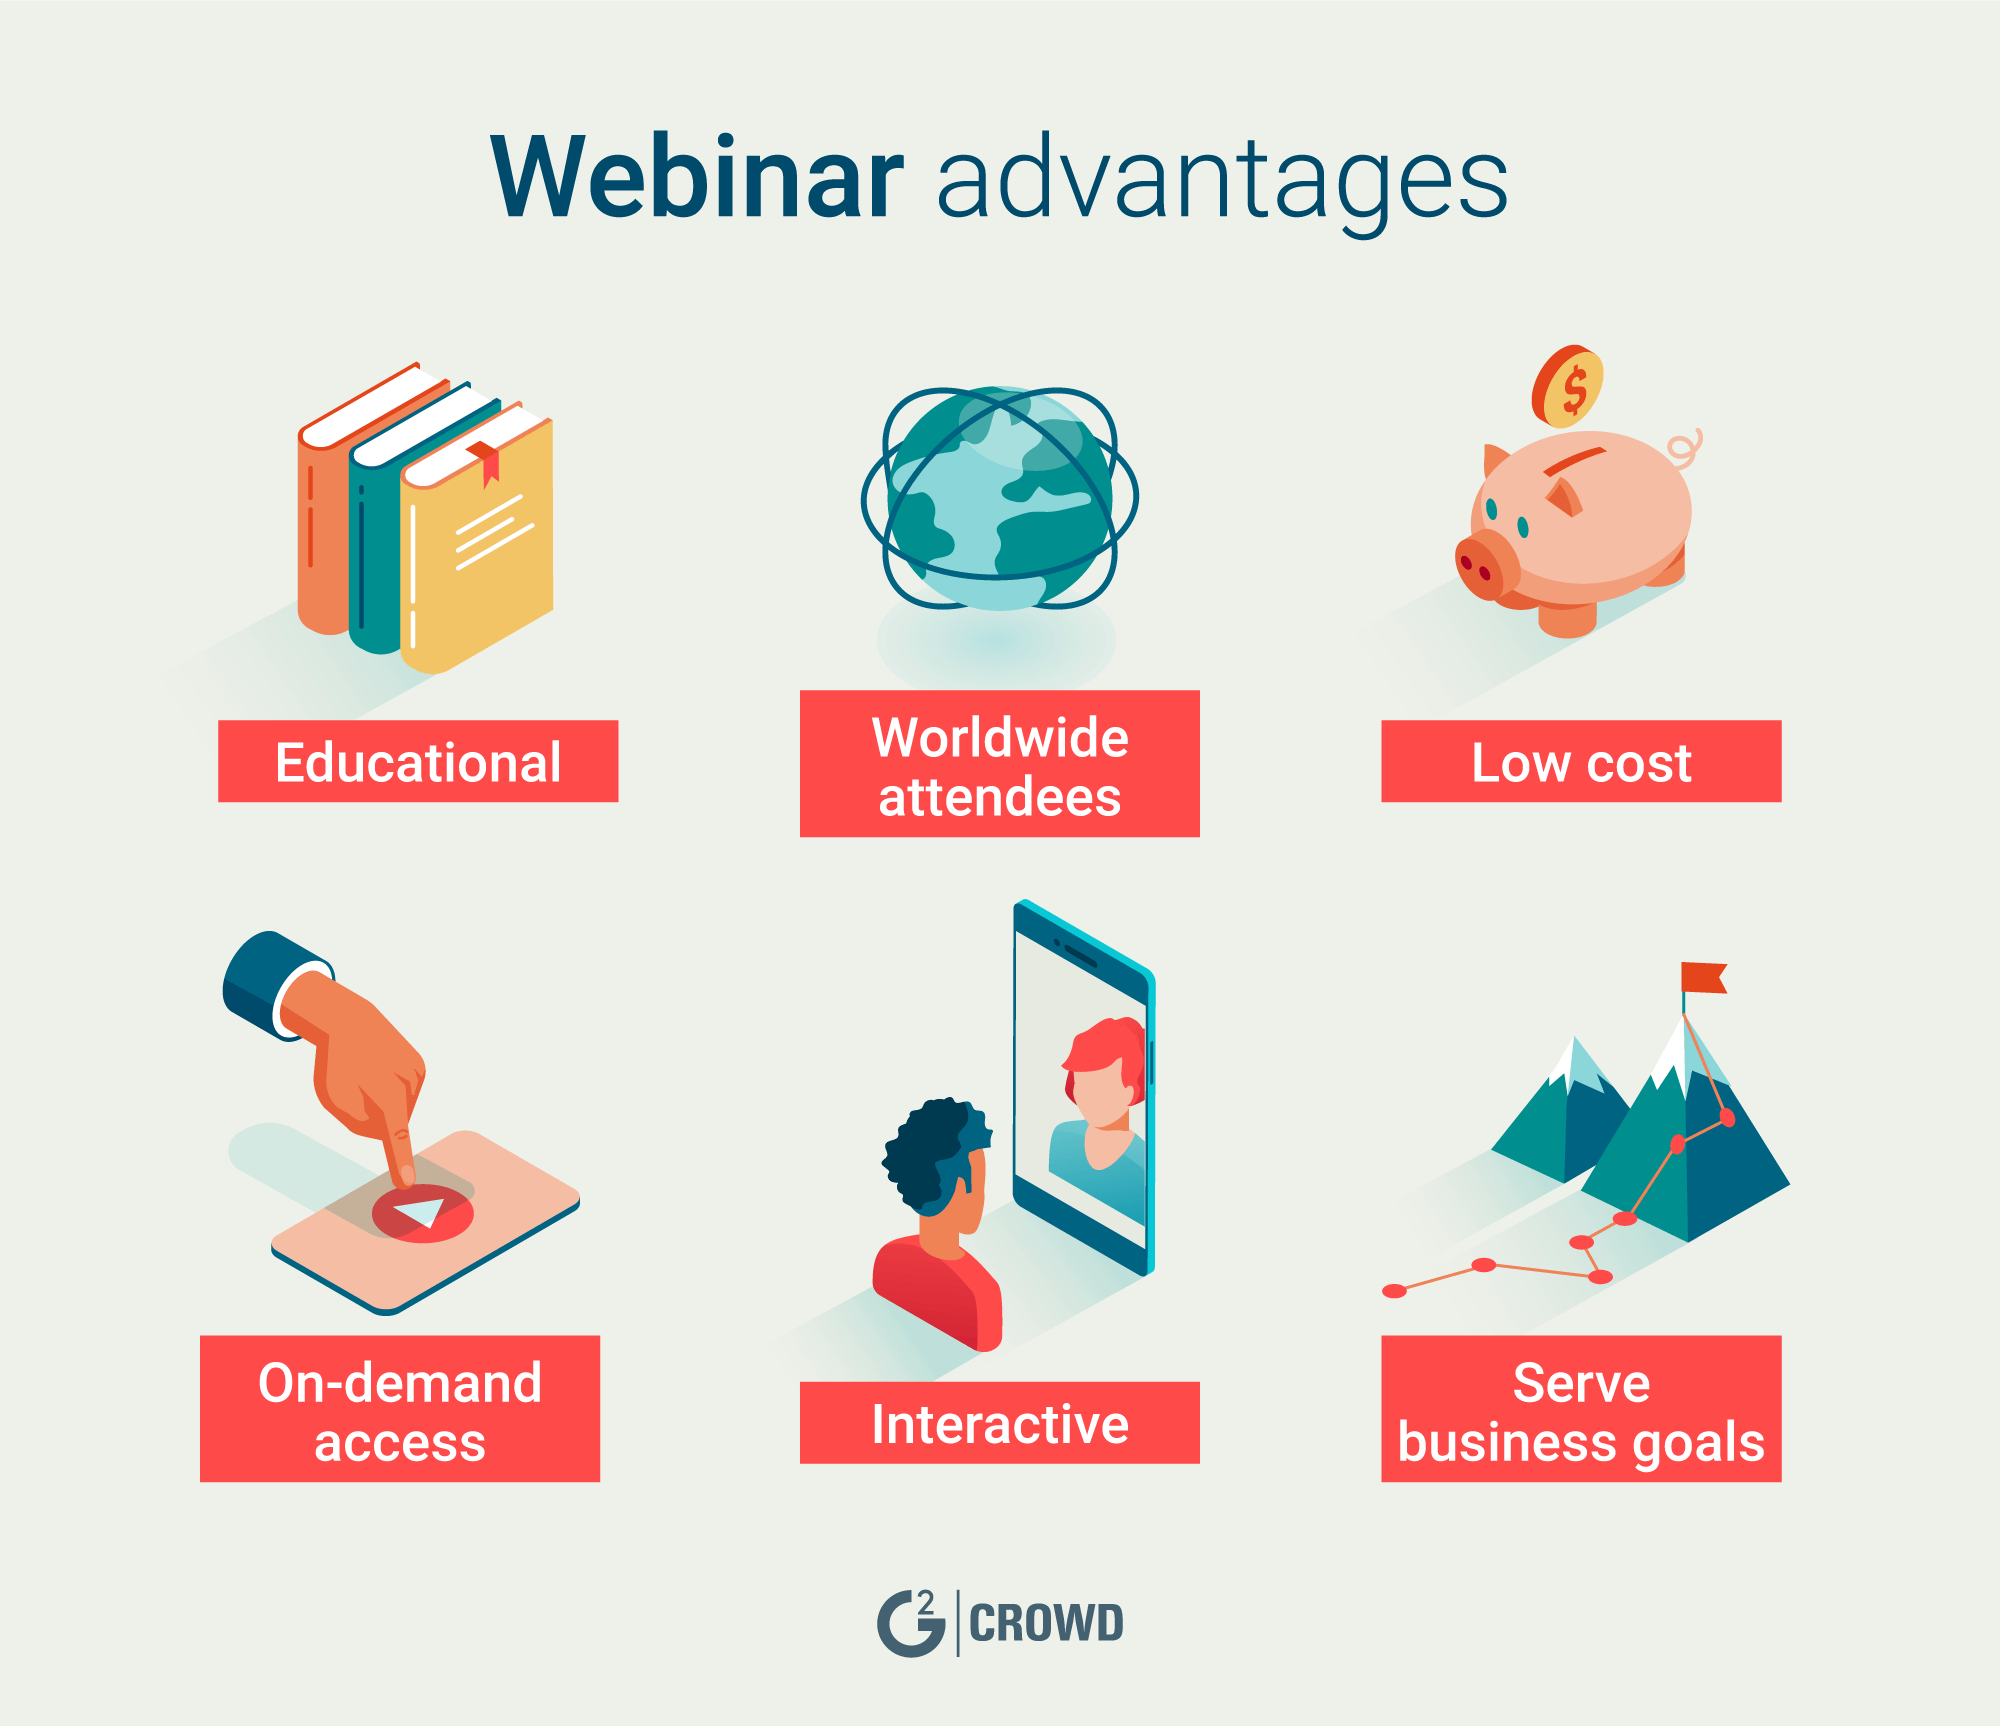 Webinars are a win-win for hosts and attendees.